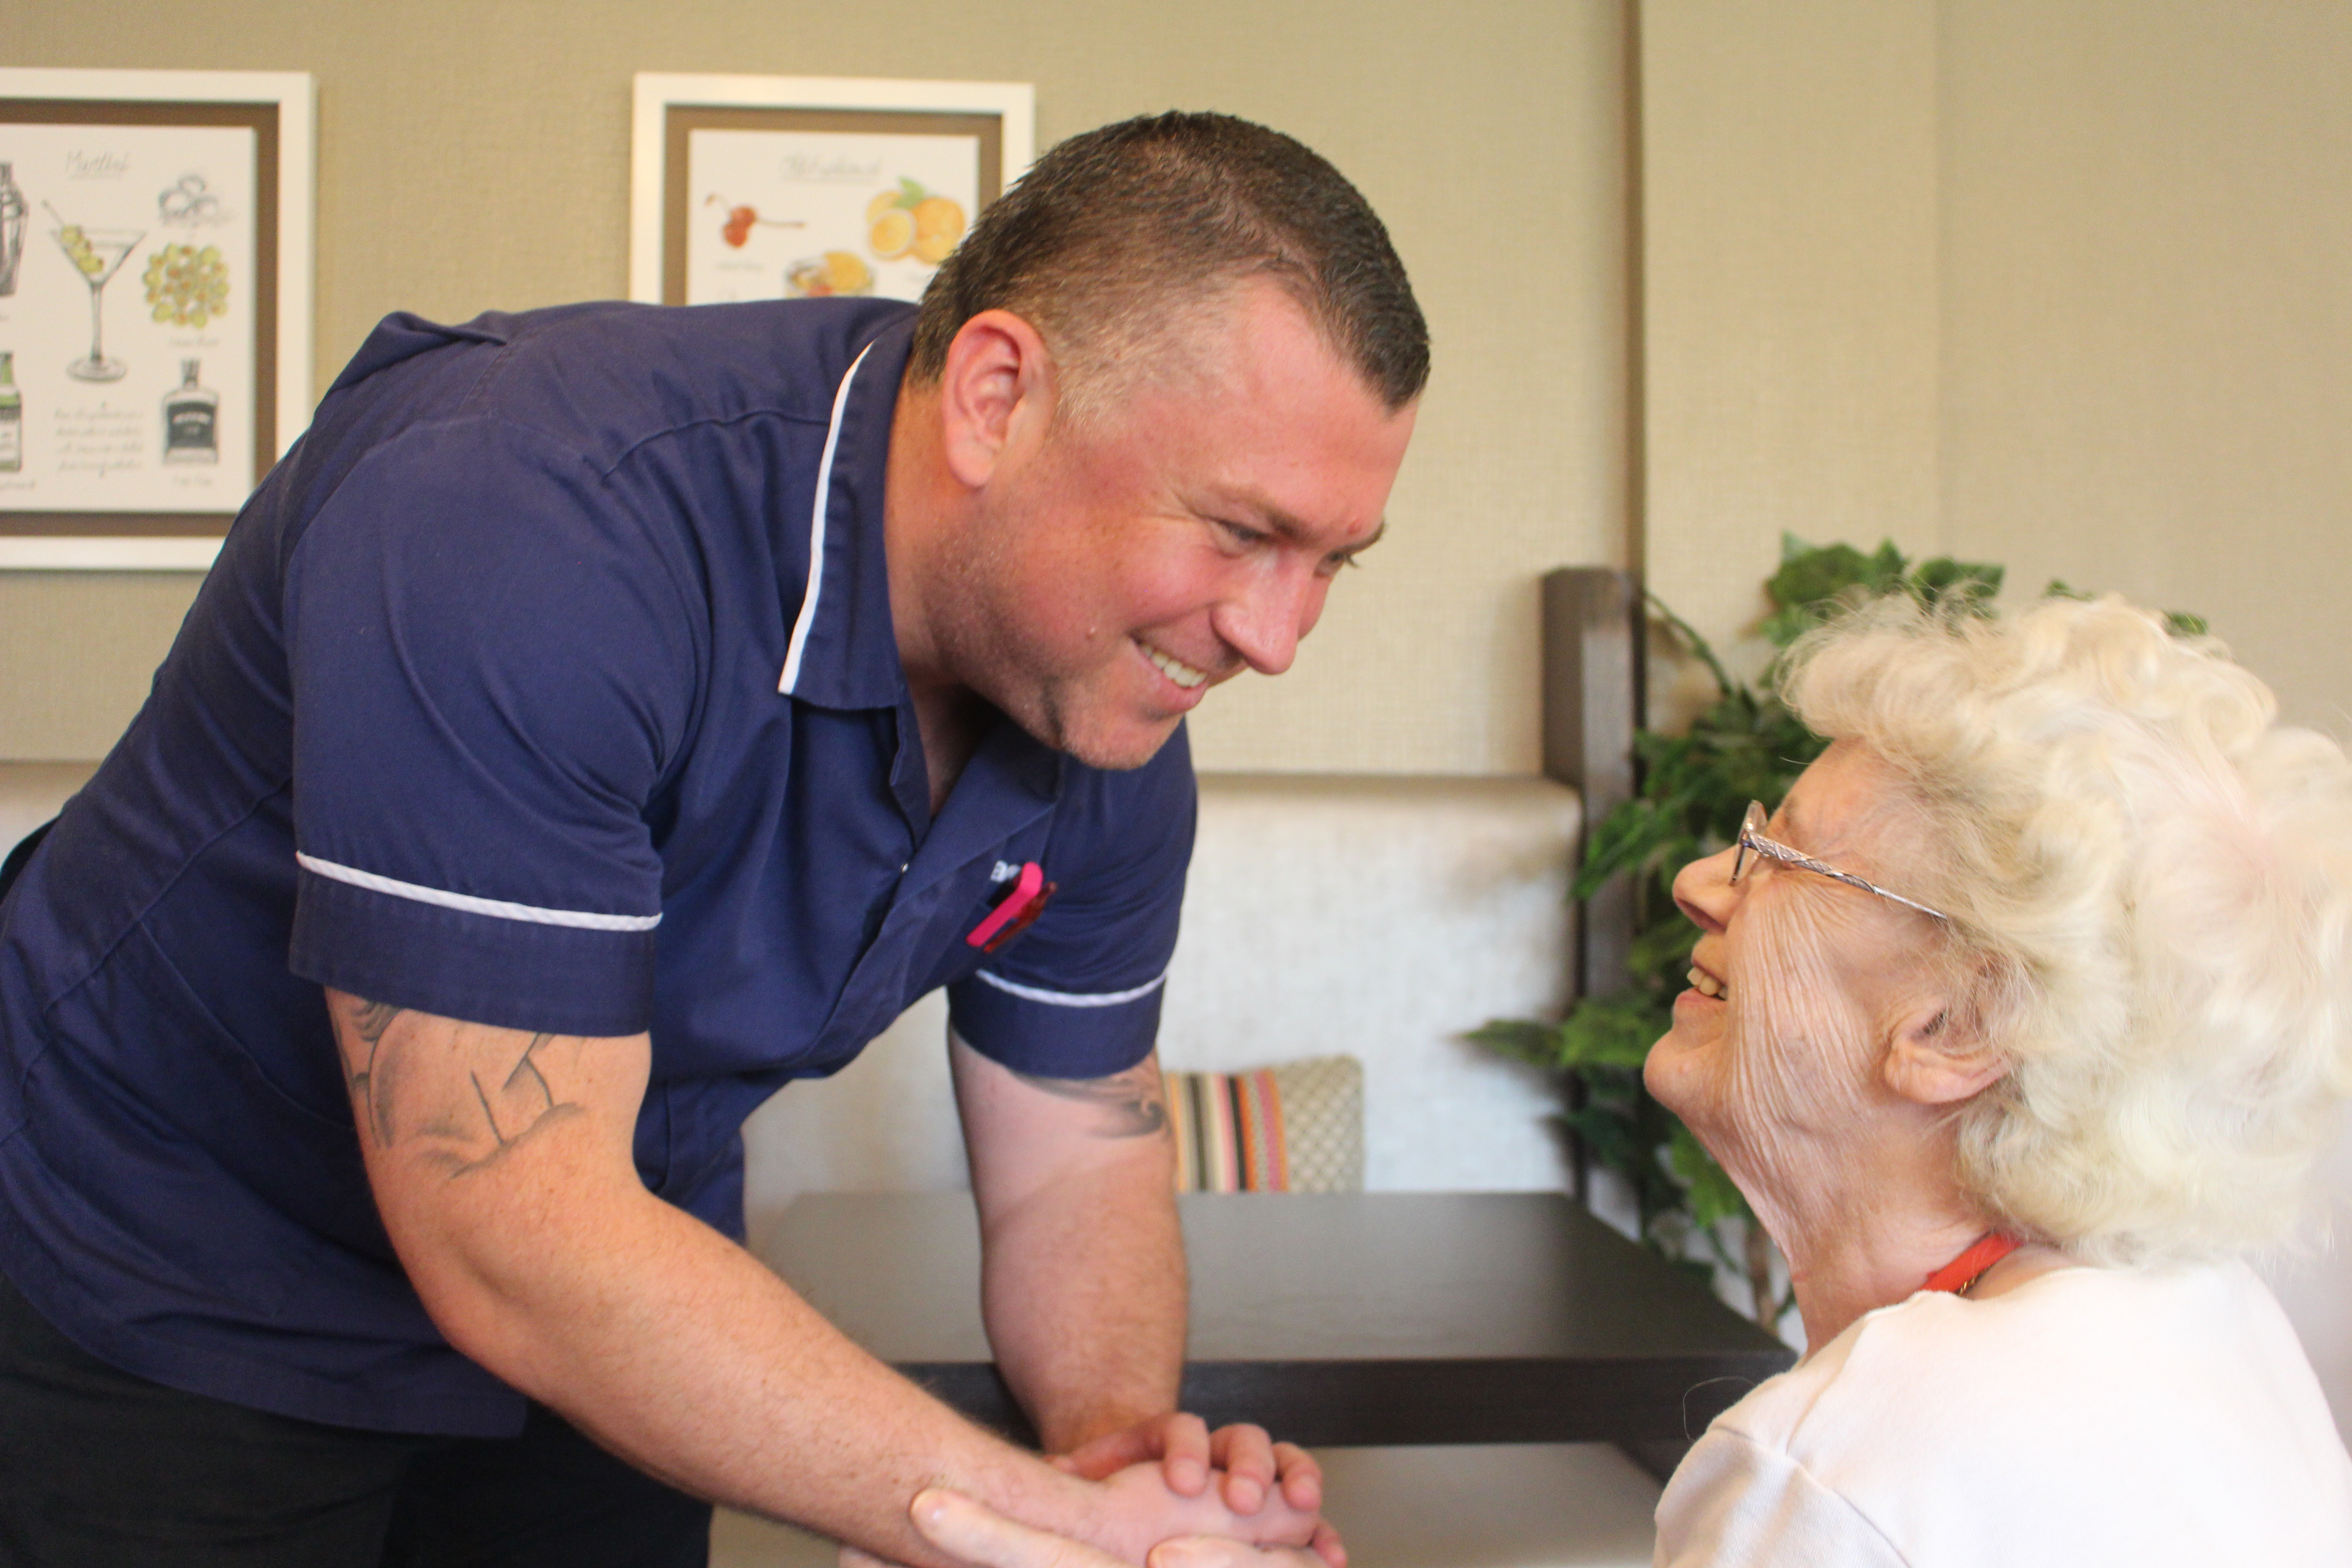 A nurse bending over and holding the hands of a care home resident.